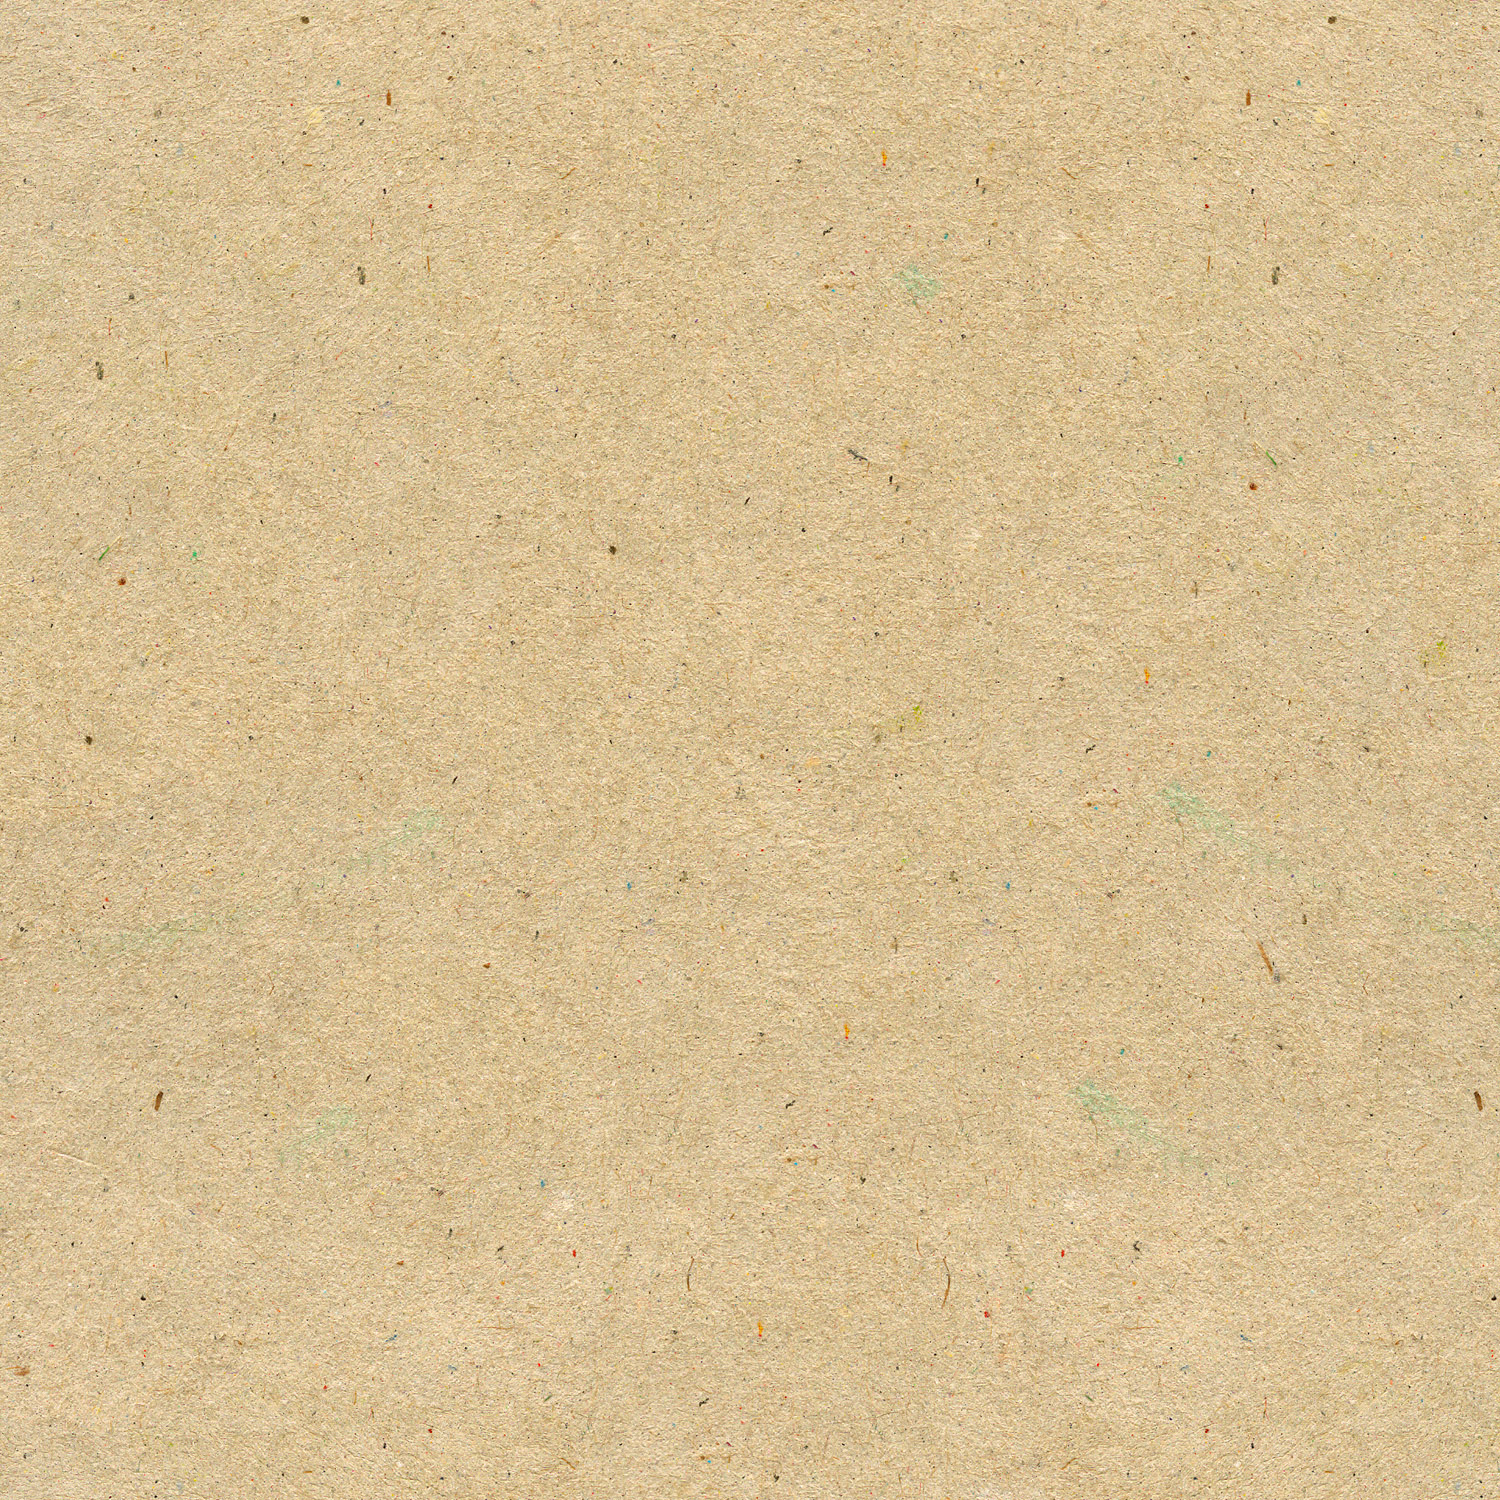 Tileable cardboard texture download free textures